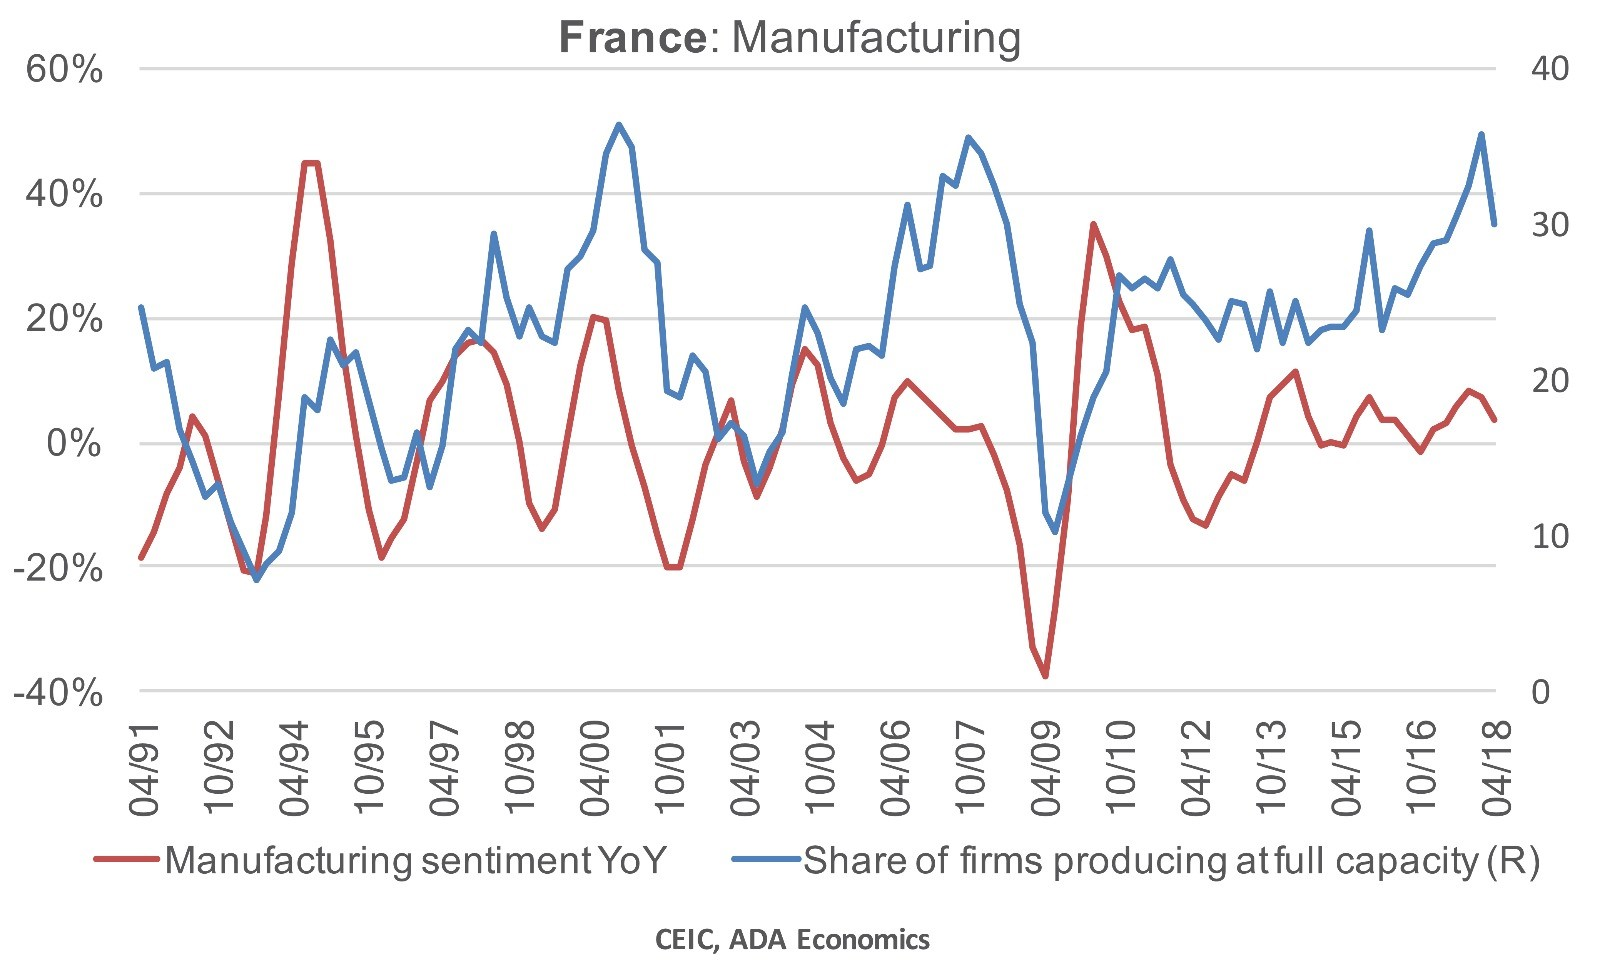 France: Manufacturing sector